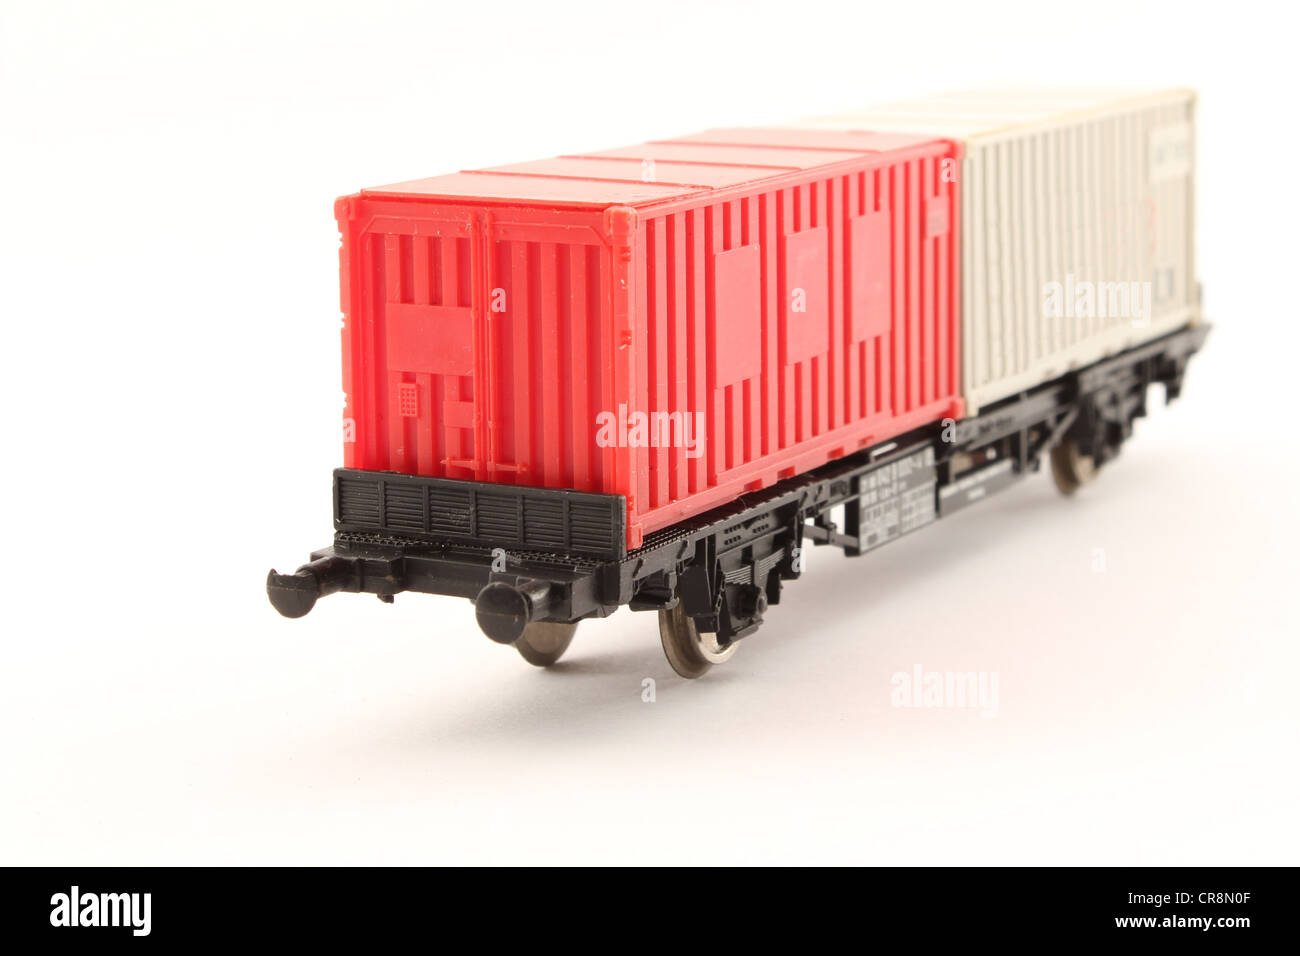 Model train container carrier. Stock Photo